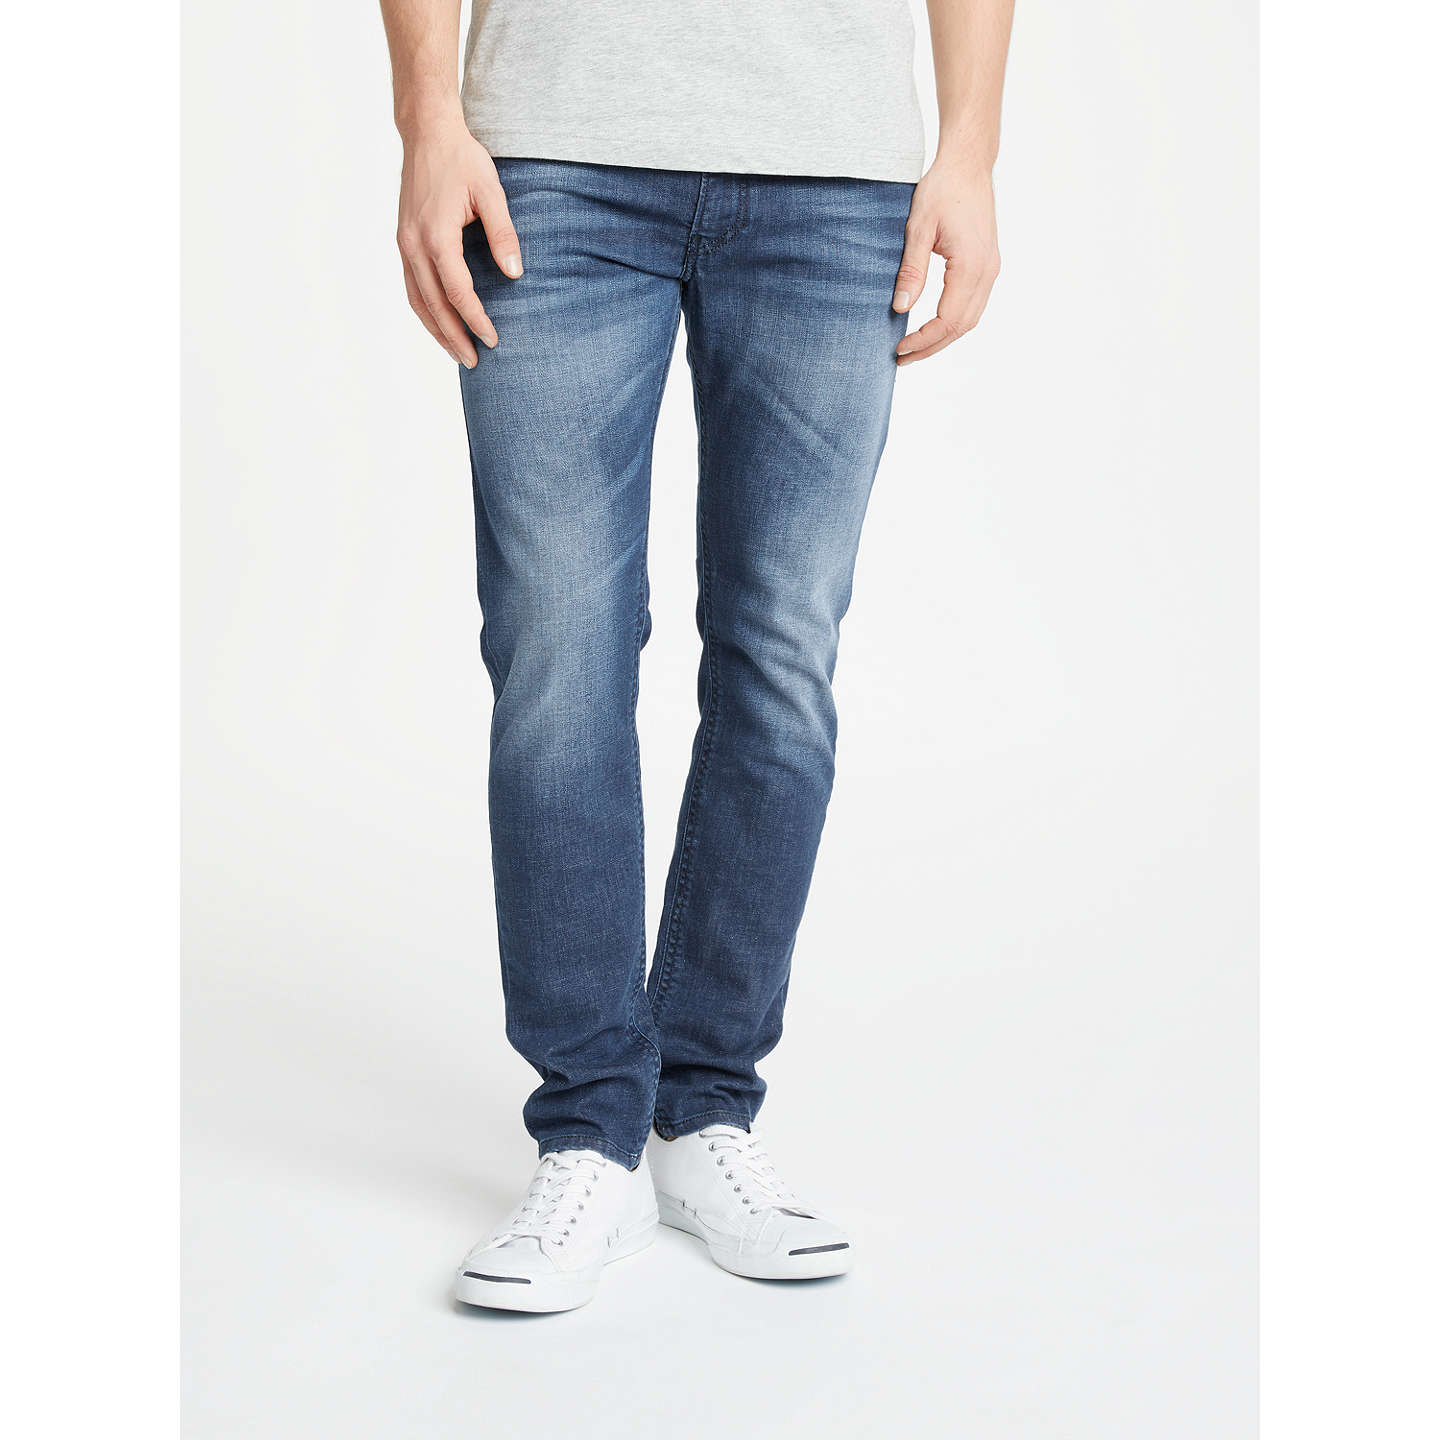 BuyDiesel Thommer Skinny Fit Stretch Jeans, Blue 84MW, 32S Online at johnlewis.com